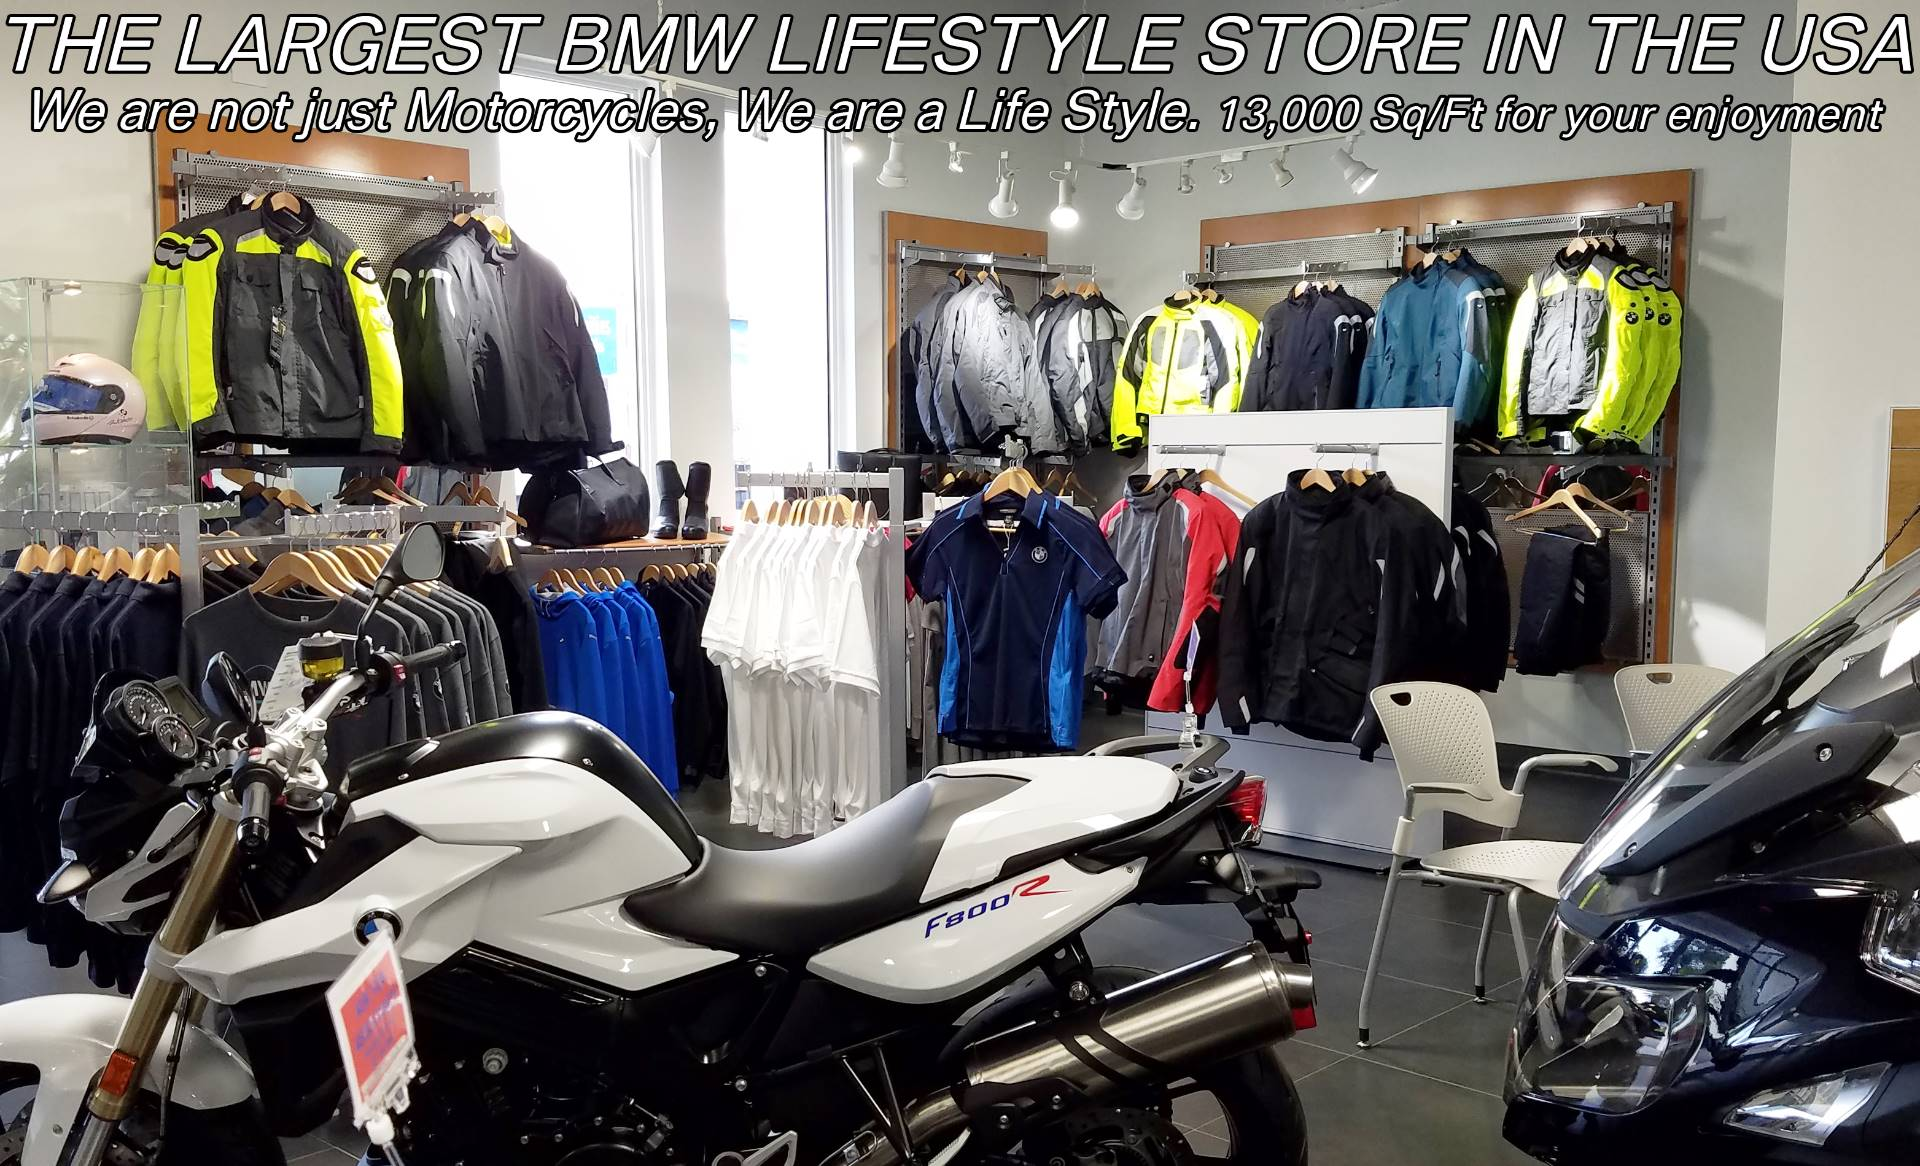 BMW Motorcycles of Miami, Motorcycles of Miami, Motorcycles Miami, New Motorcycles, Used Motorcycles, pre-owned. #BMWMotorcyclesOfMiami #MotorcyclesOfMiami - Photo 28